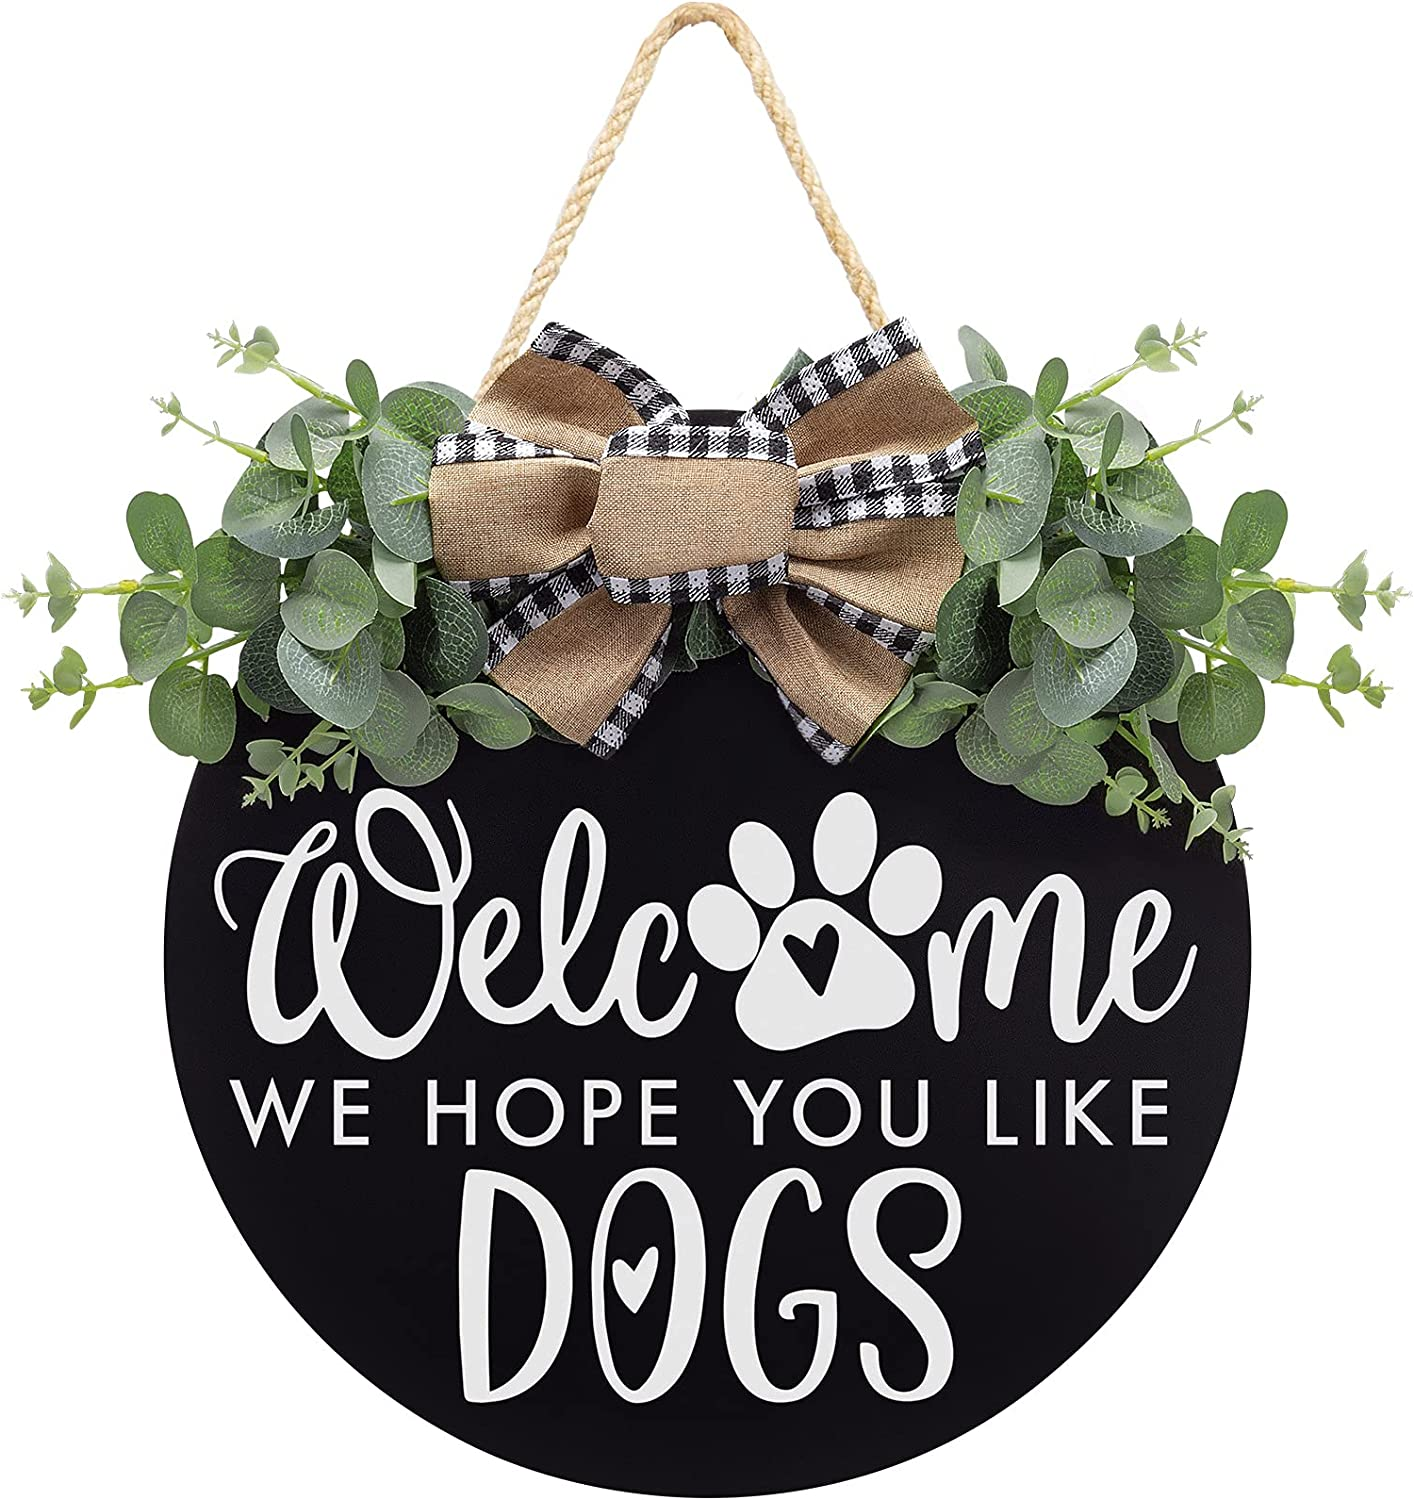 Welcome We Hope You Like Dogs Farmhouse Door Sign for Front Door Decor with Eucalyptus Leaves and Buffalo Plaid Bow - Welcome Dogs Wreath Sign Door Hanger for Dogs Lovers Housewarming Gift Home Décor